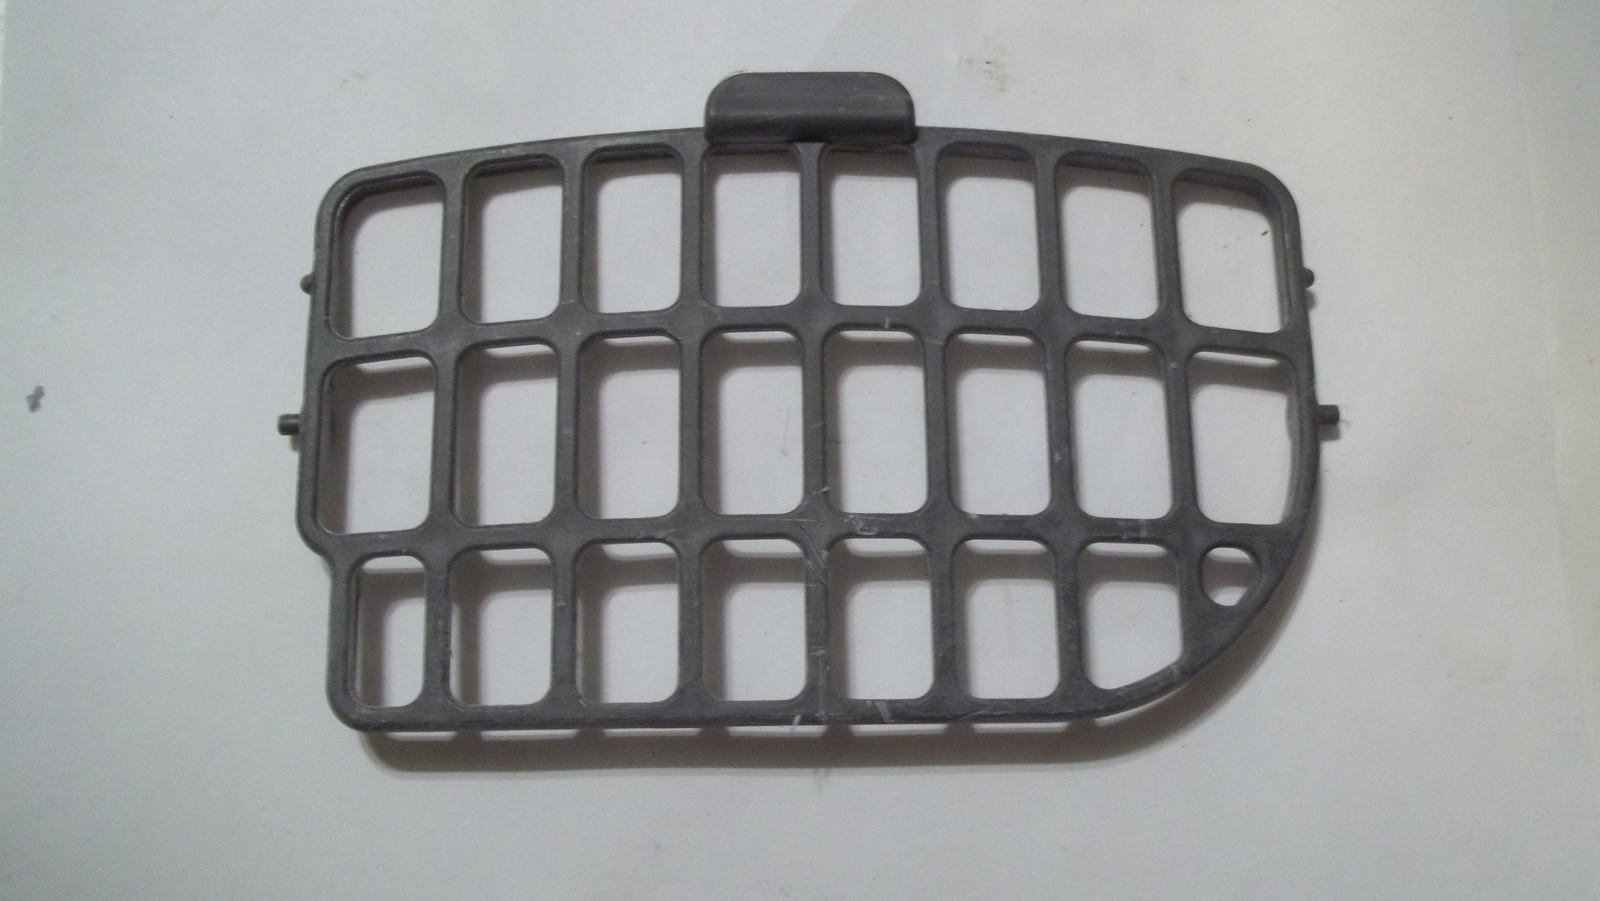 Primary image for Frigidaire Dishwasher Model FPHD2491KF0 Rear Basket Cover 5304475630